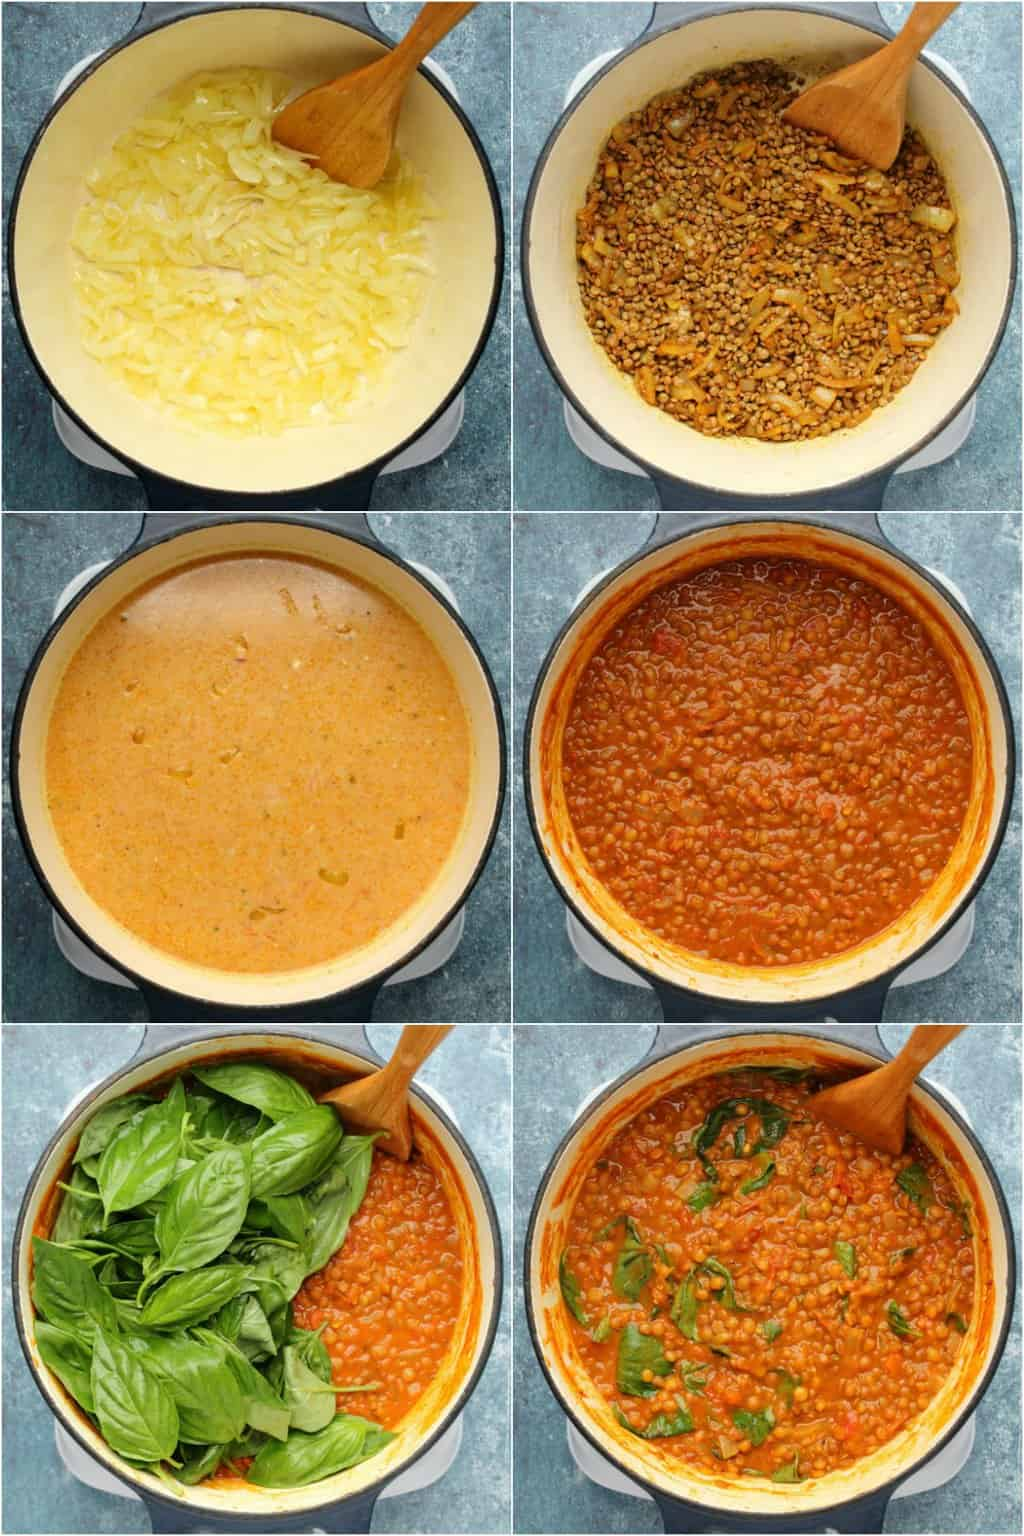 Step by step process photo collage of making vegan lentil curry.